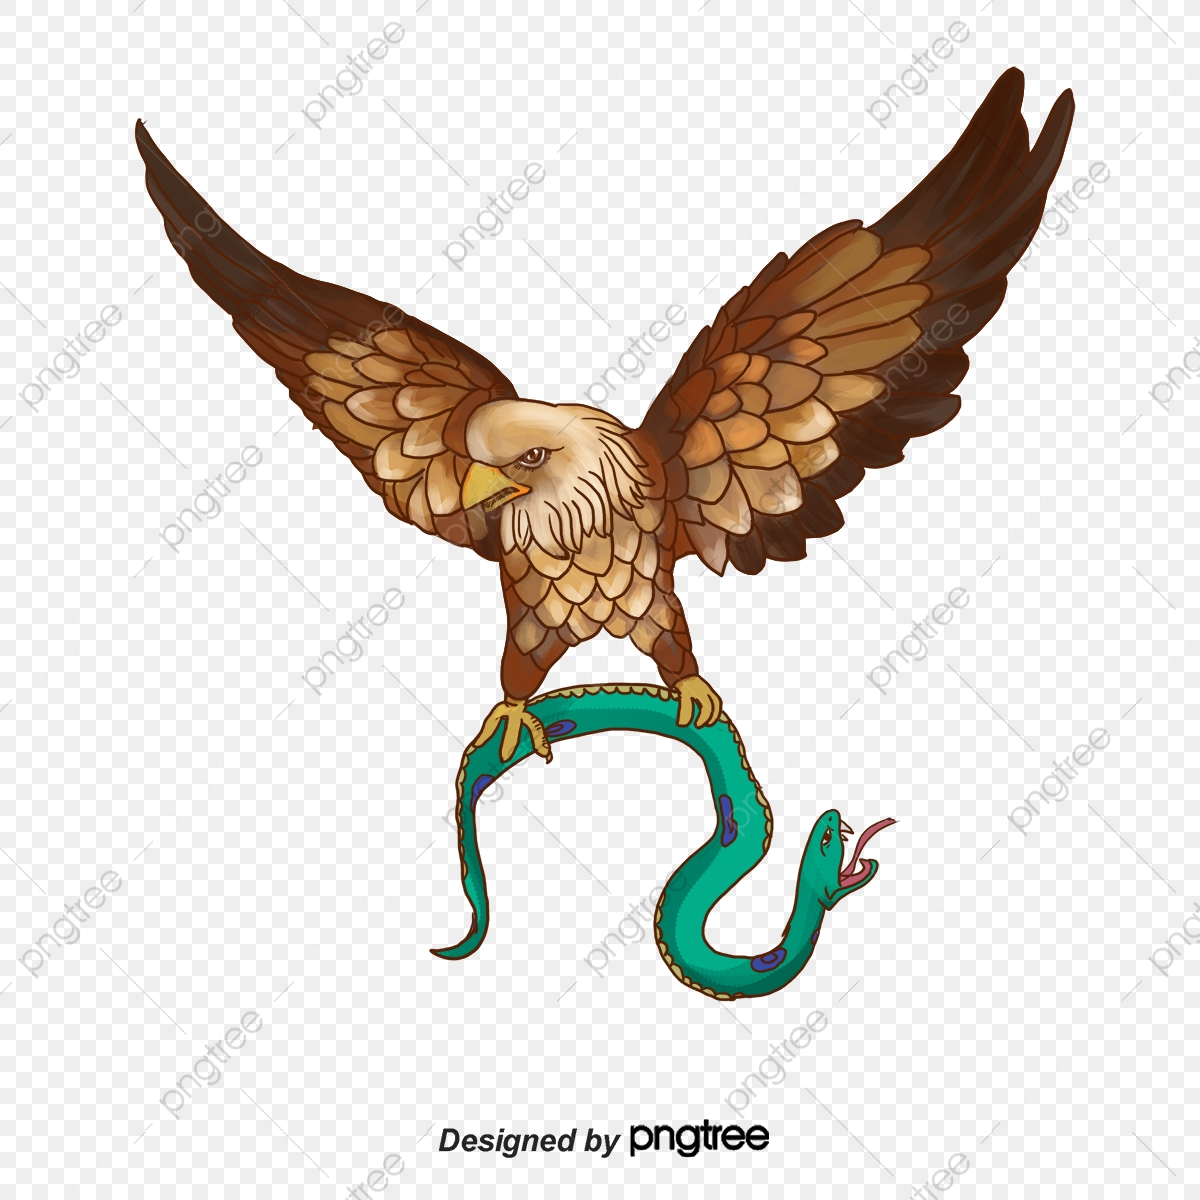 The that catches vector. Snake clipart eagle